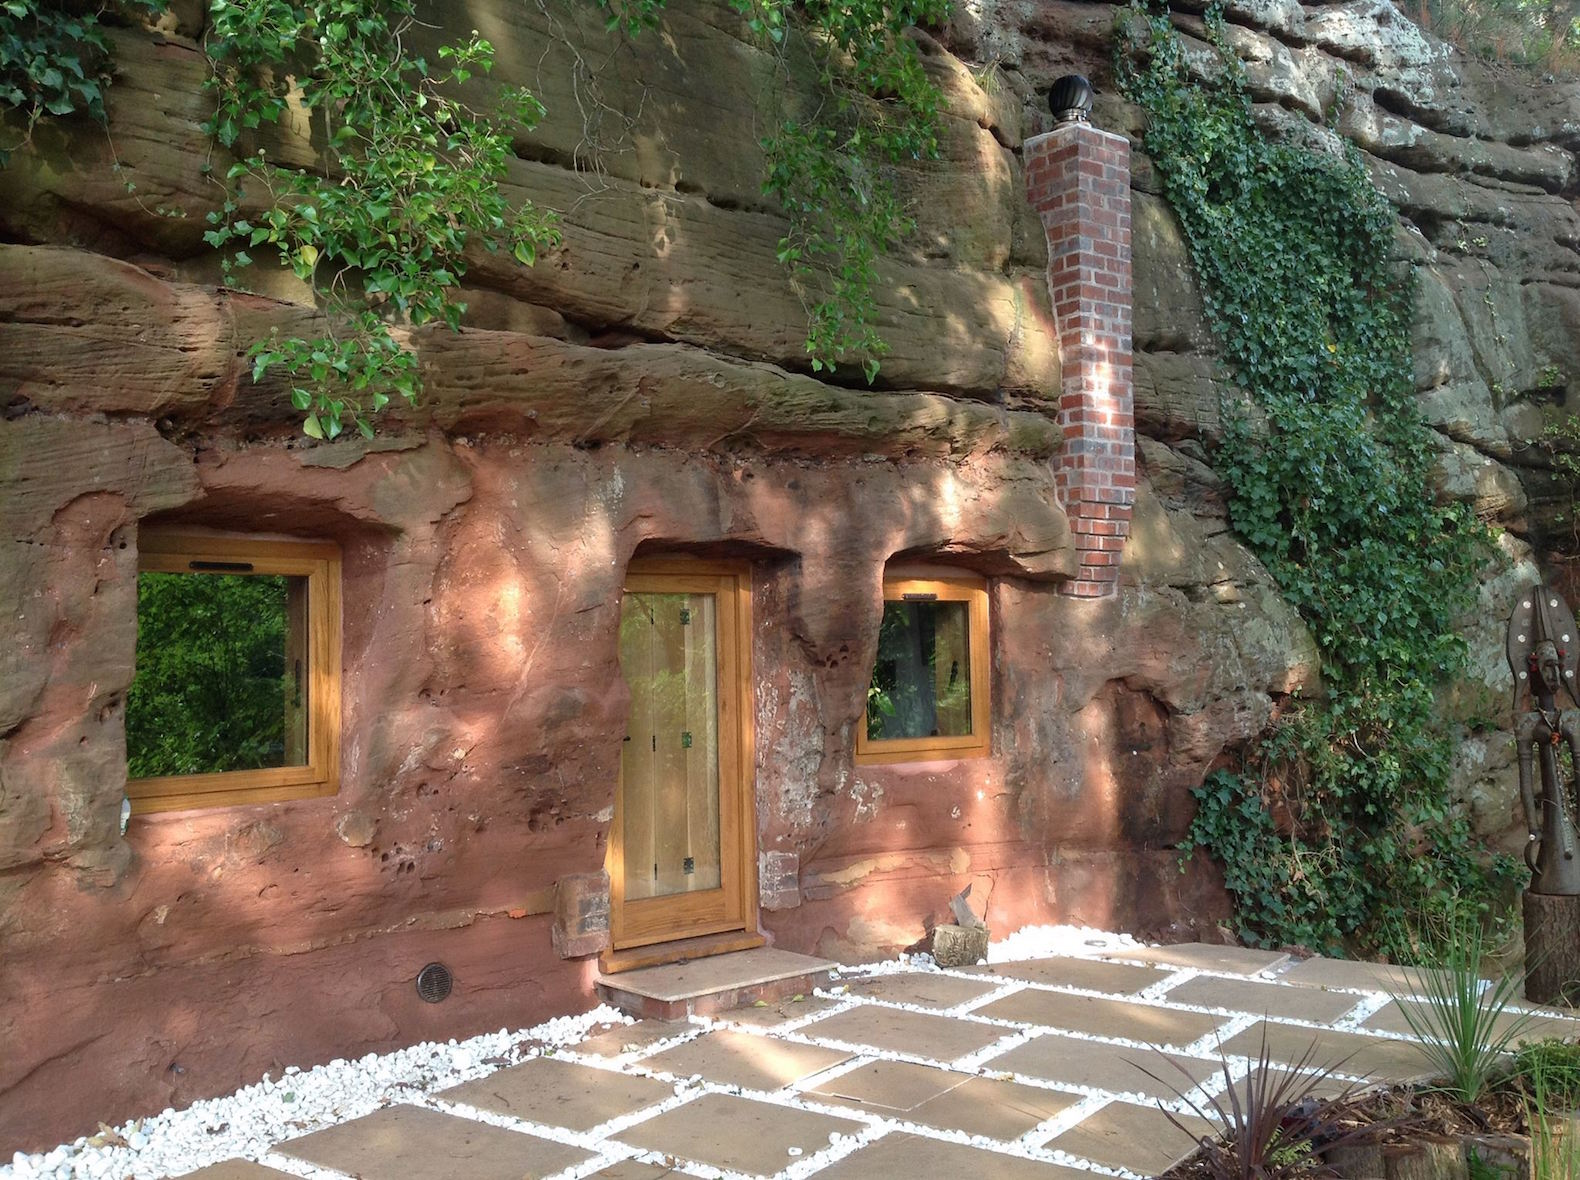 Man transforms 700-year-old sandstone cave into his luxury dream home